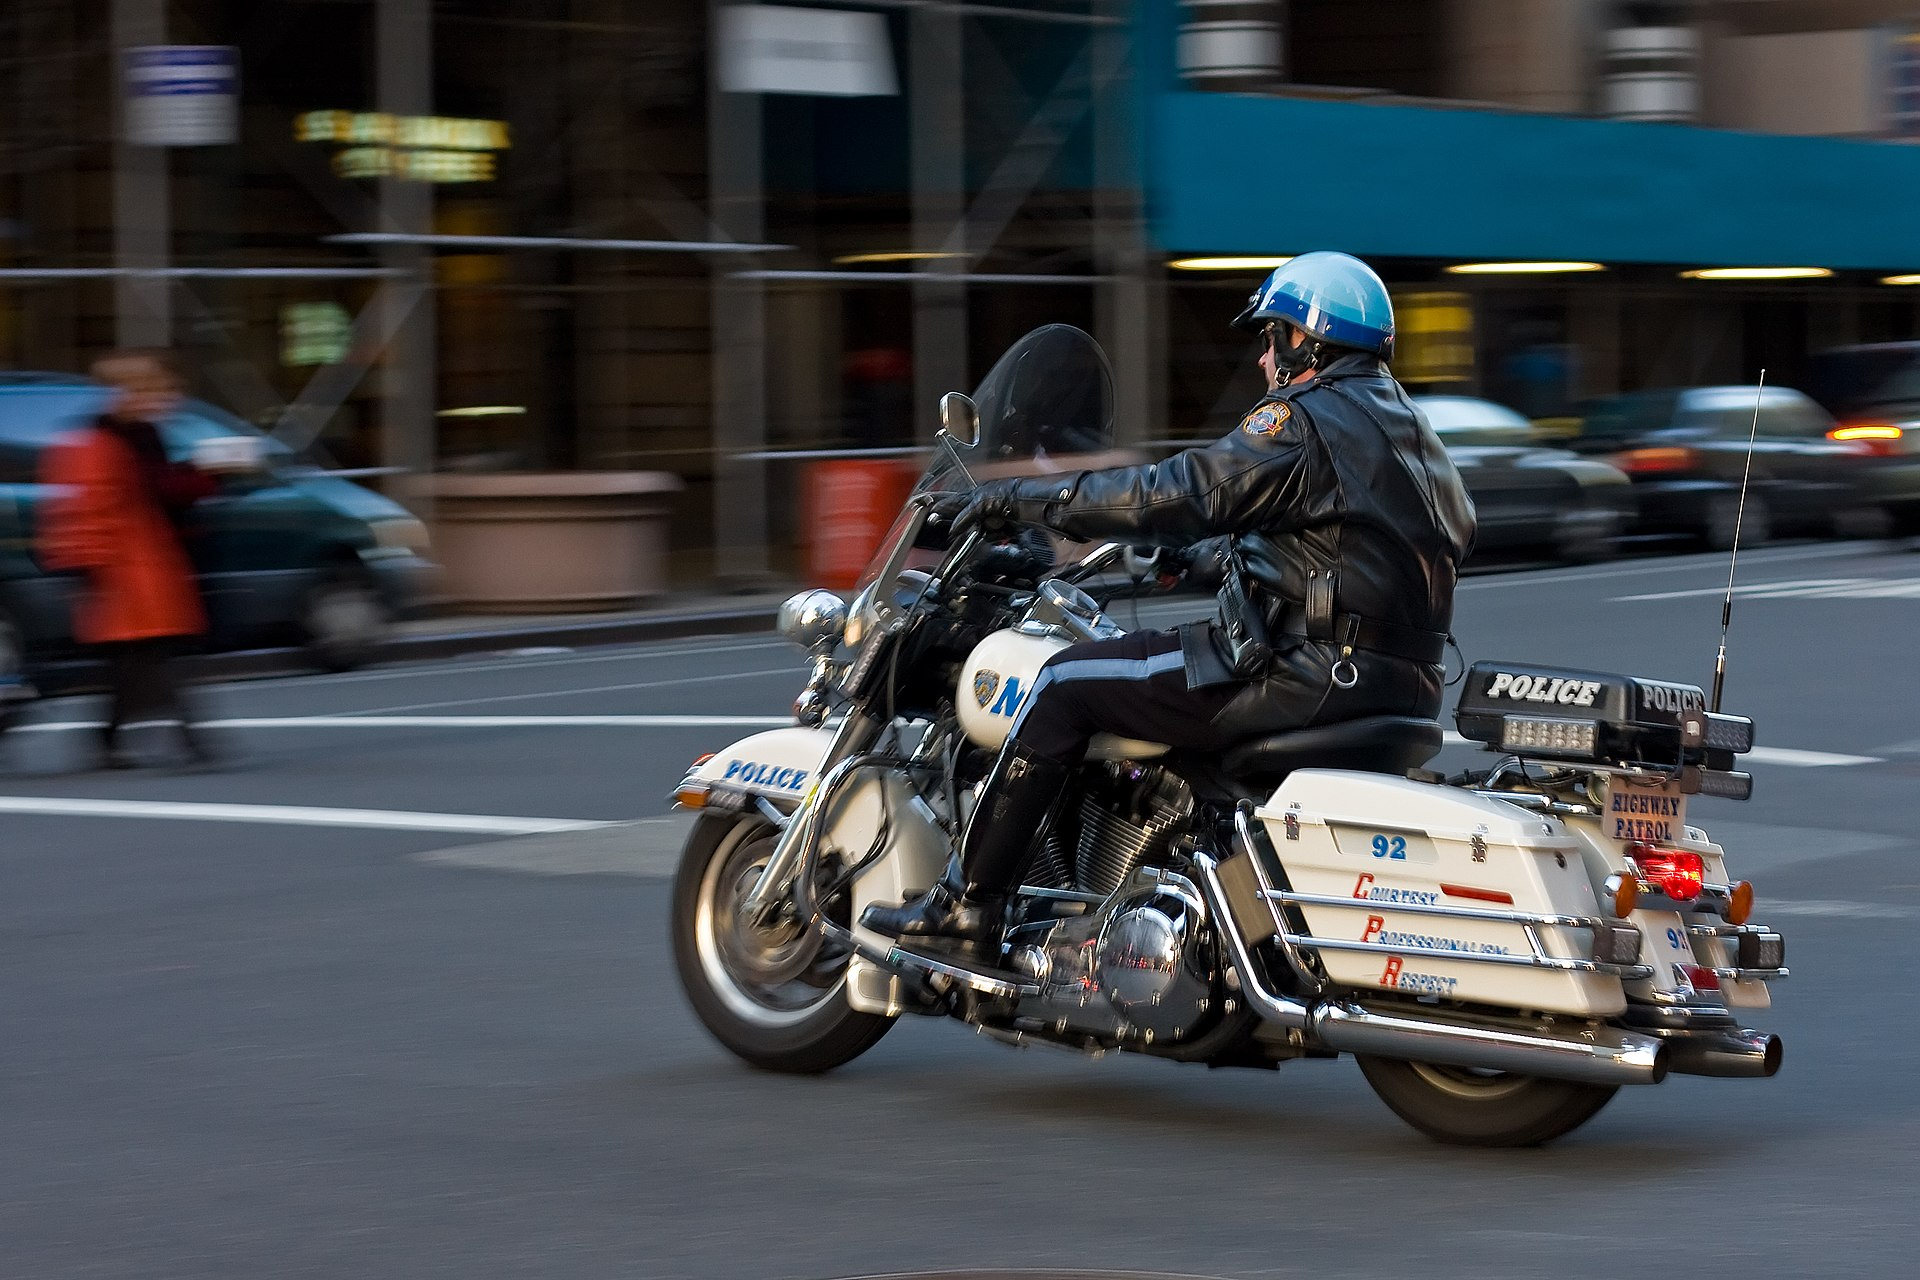 police motorcycle wikipedia officer bikes nypd motion wiki wallpapers